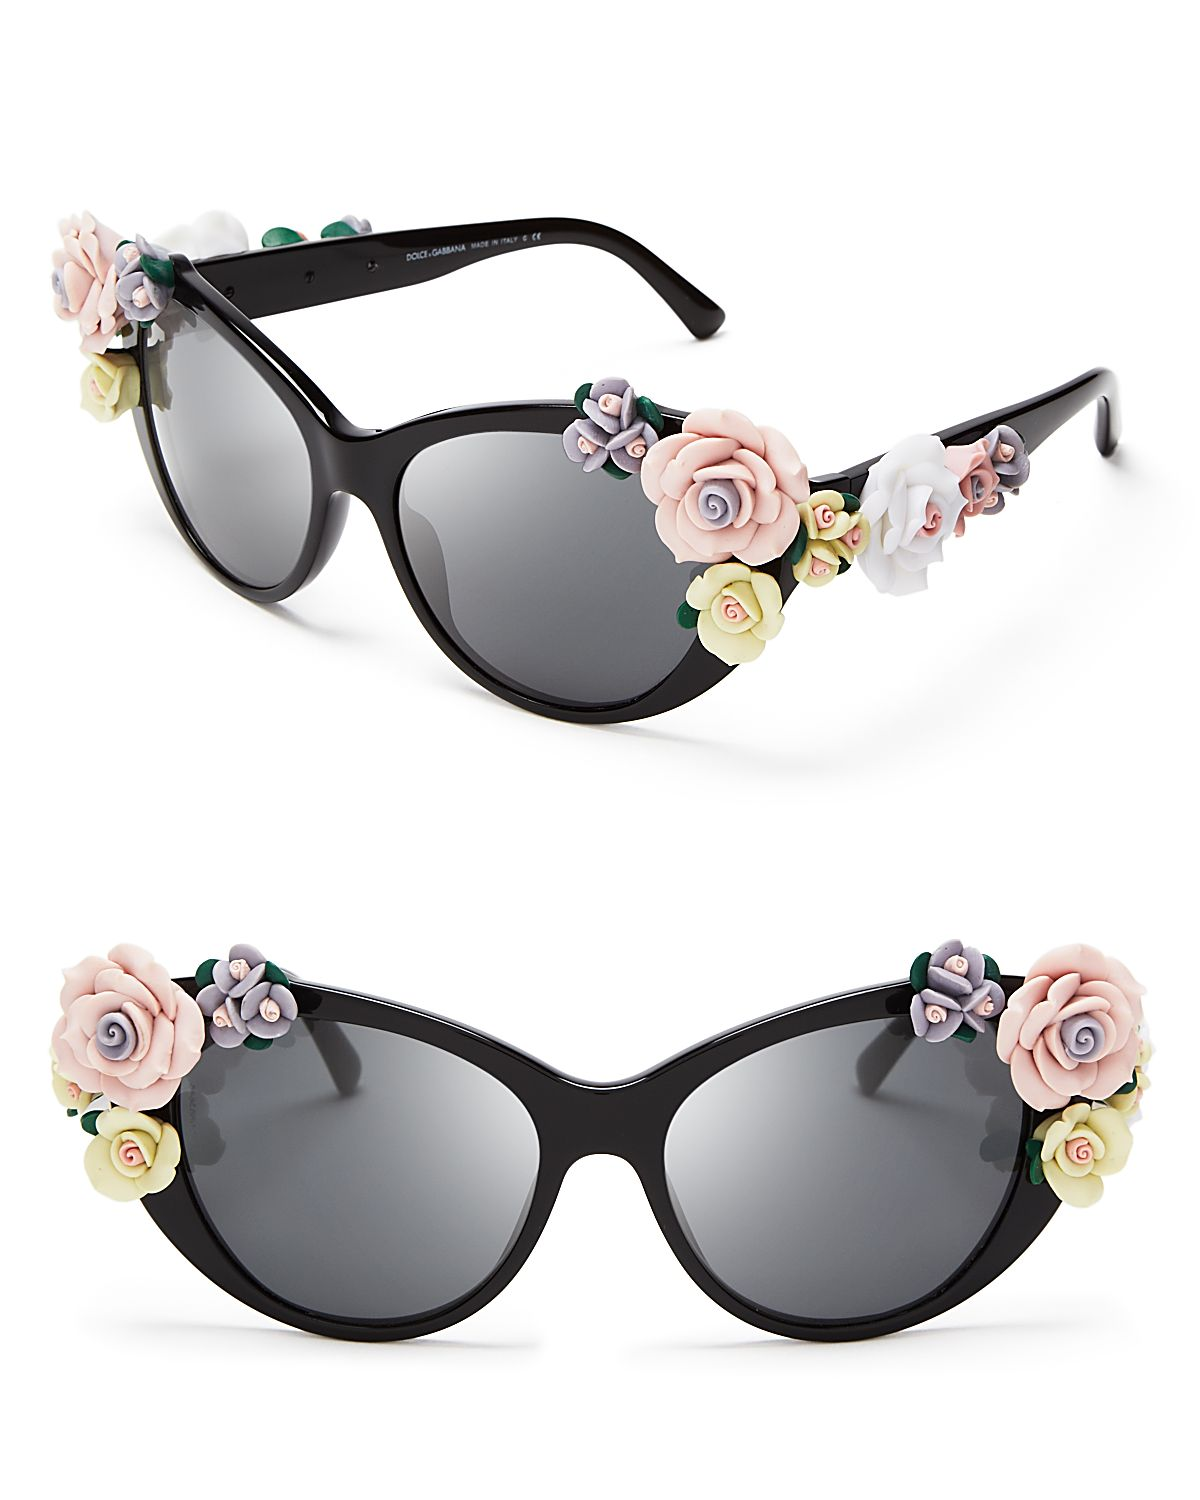 6337ebaad Dolce & Gabbana Oversized Floral Cat Eye Sunglasses in Black - Lyst